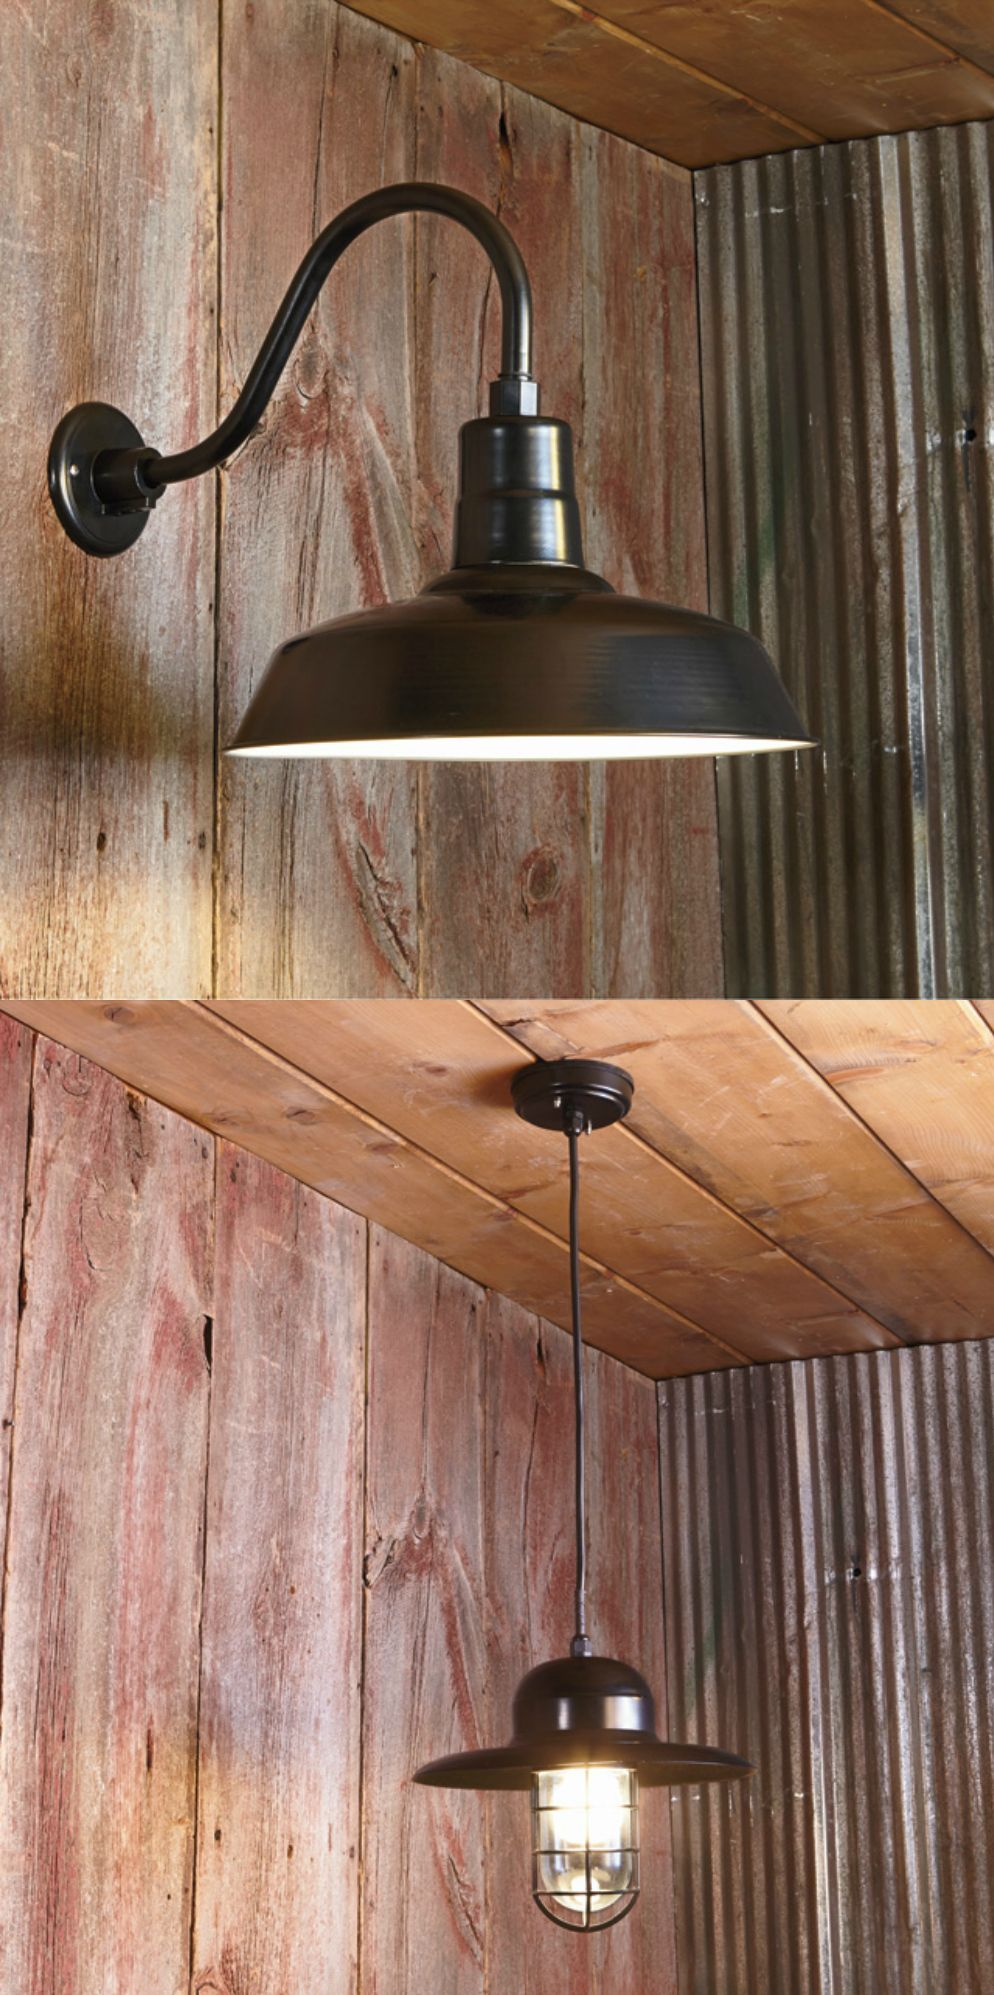 Outdoor barn lighting ideas lighting ideas for Low profile exterior wall lights